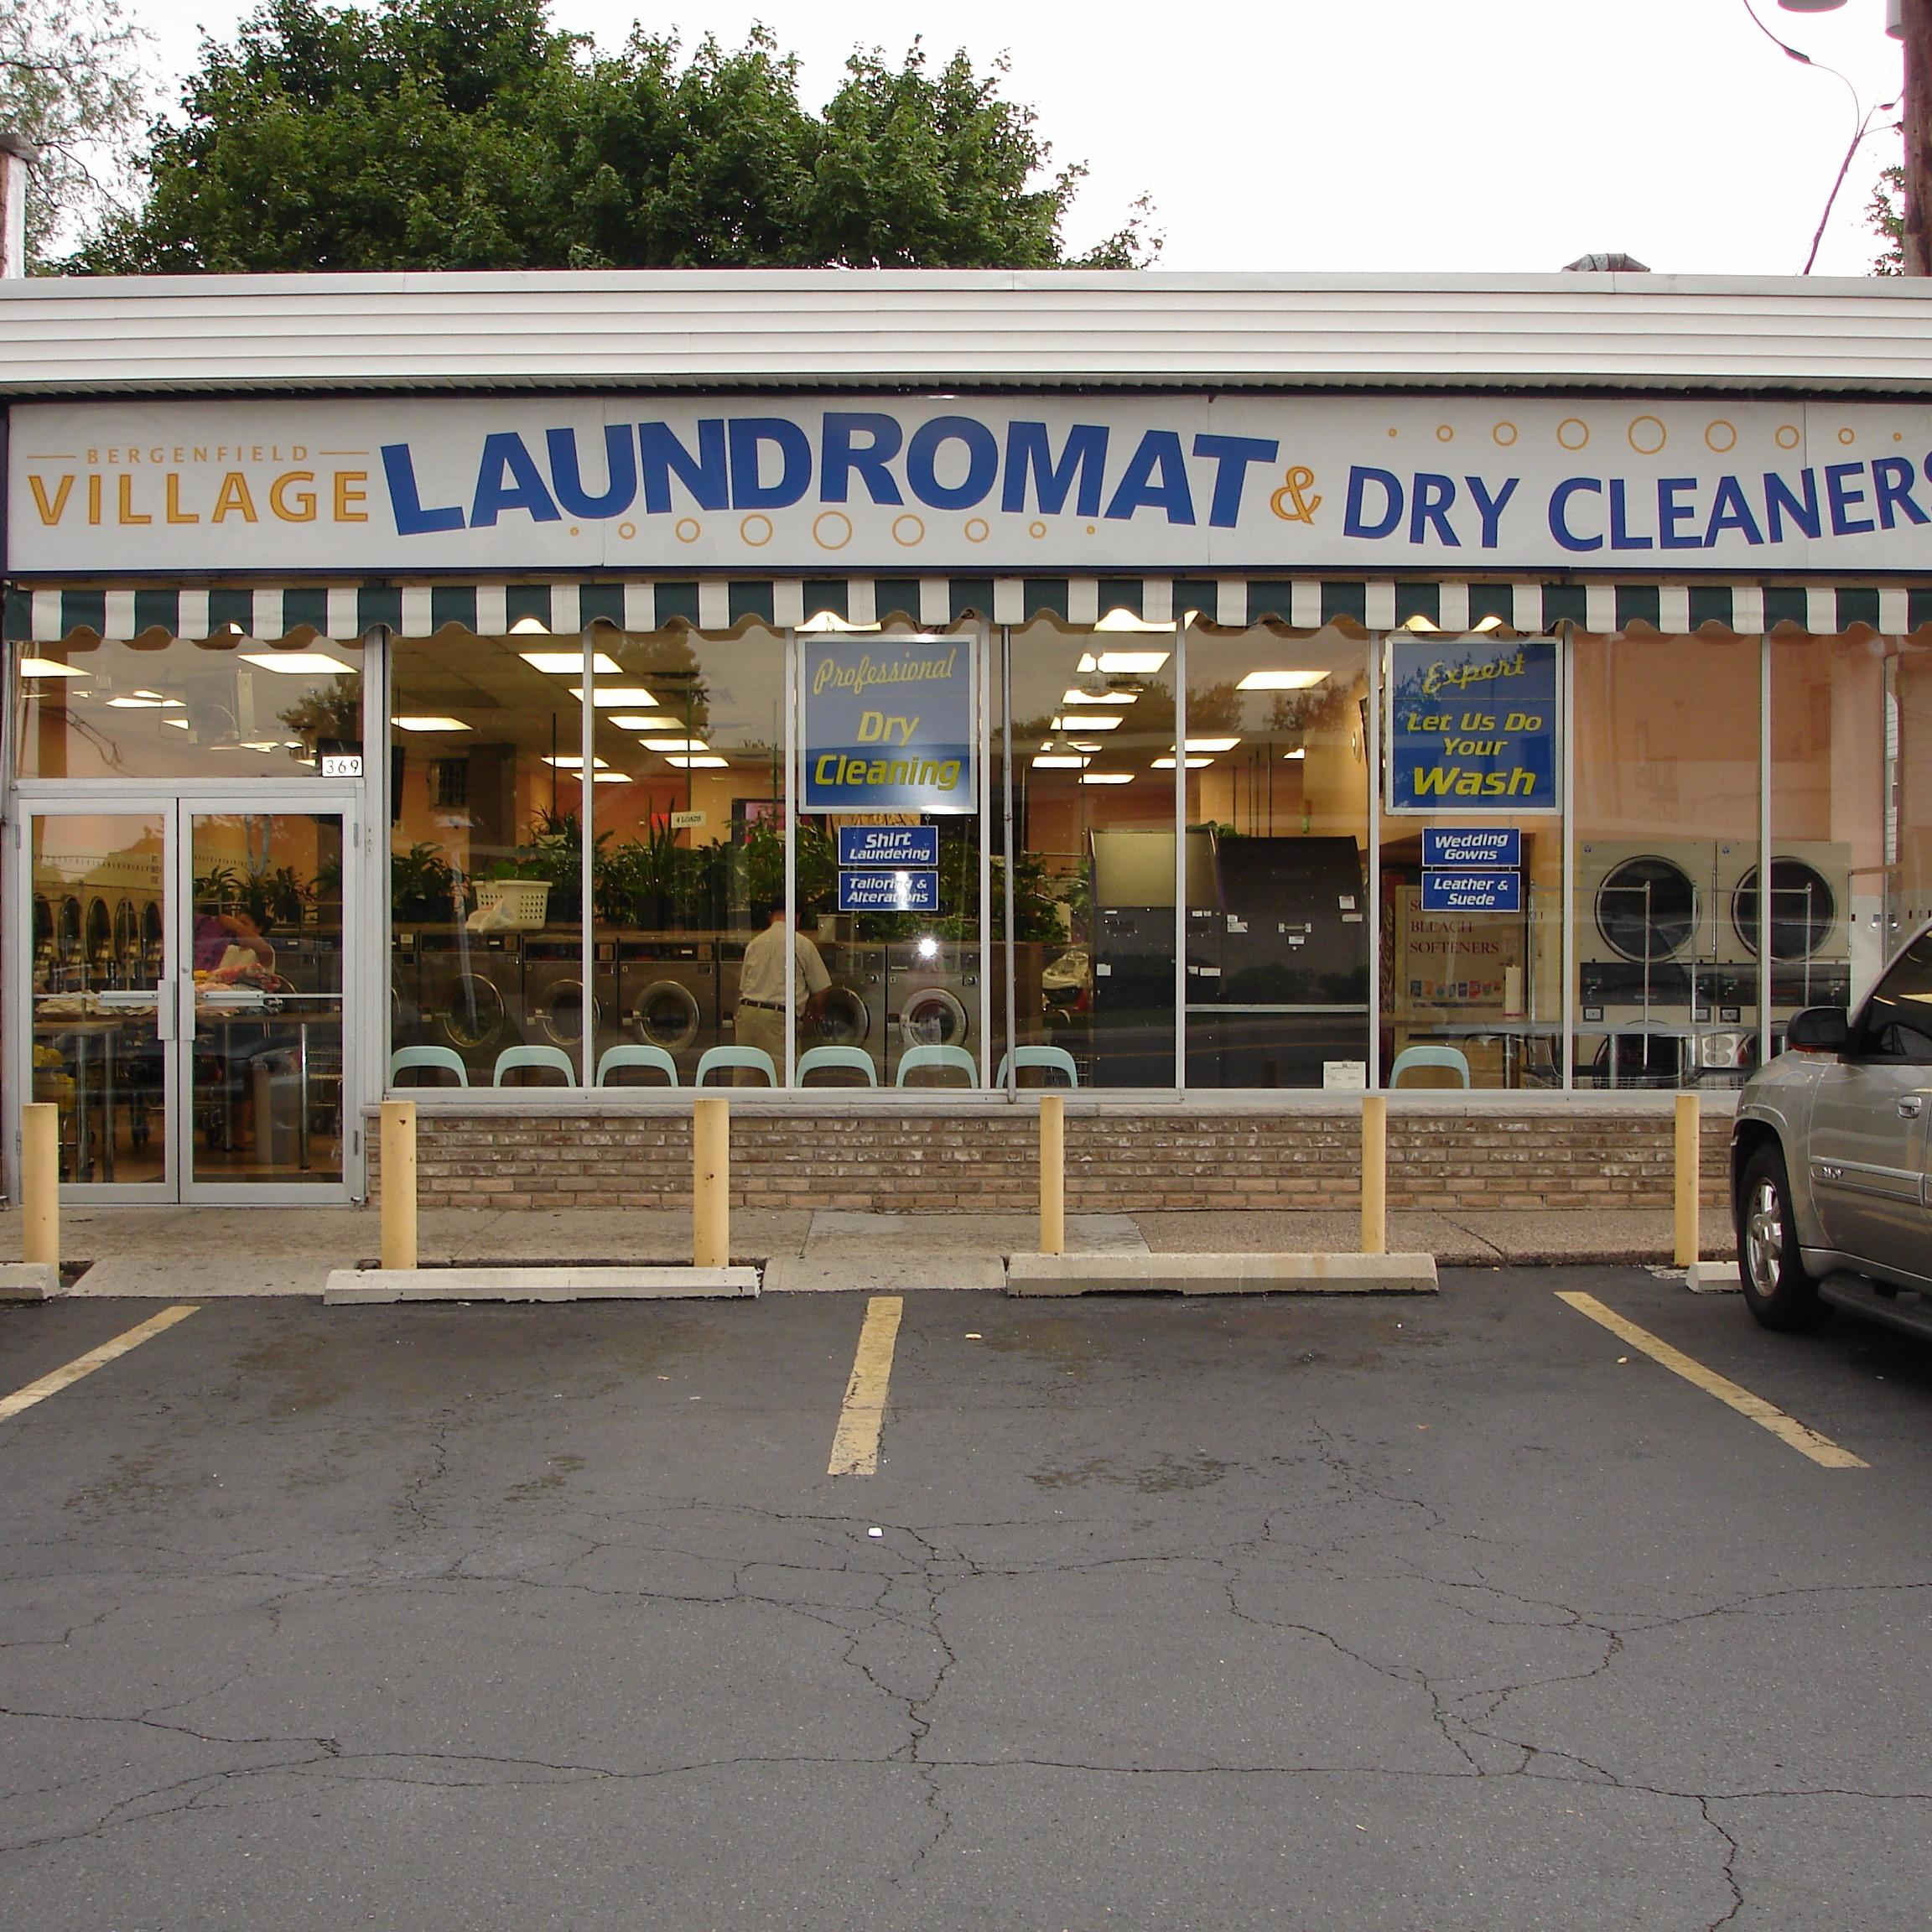 Village Laundromat & Dry Cleaners